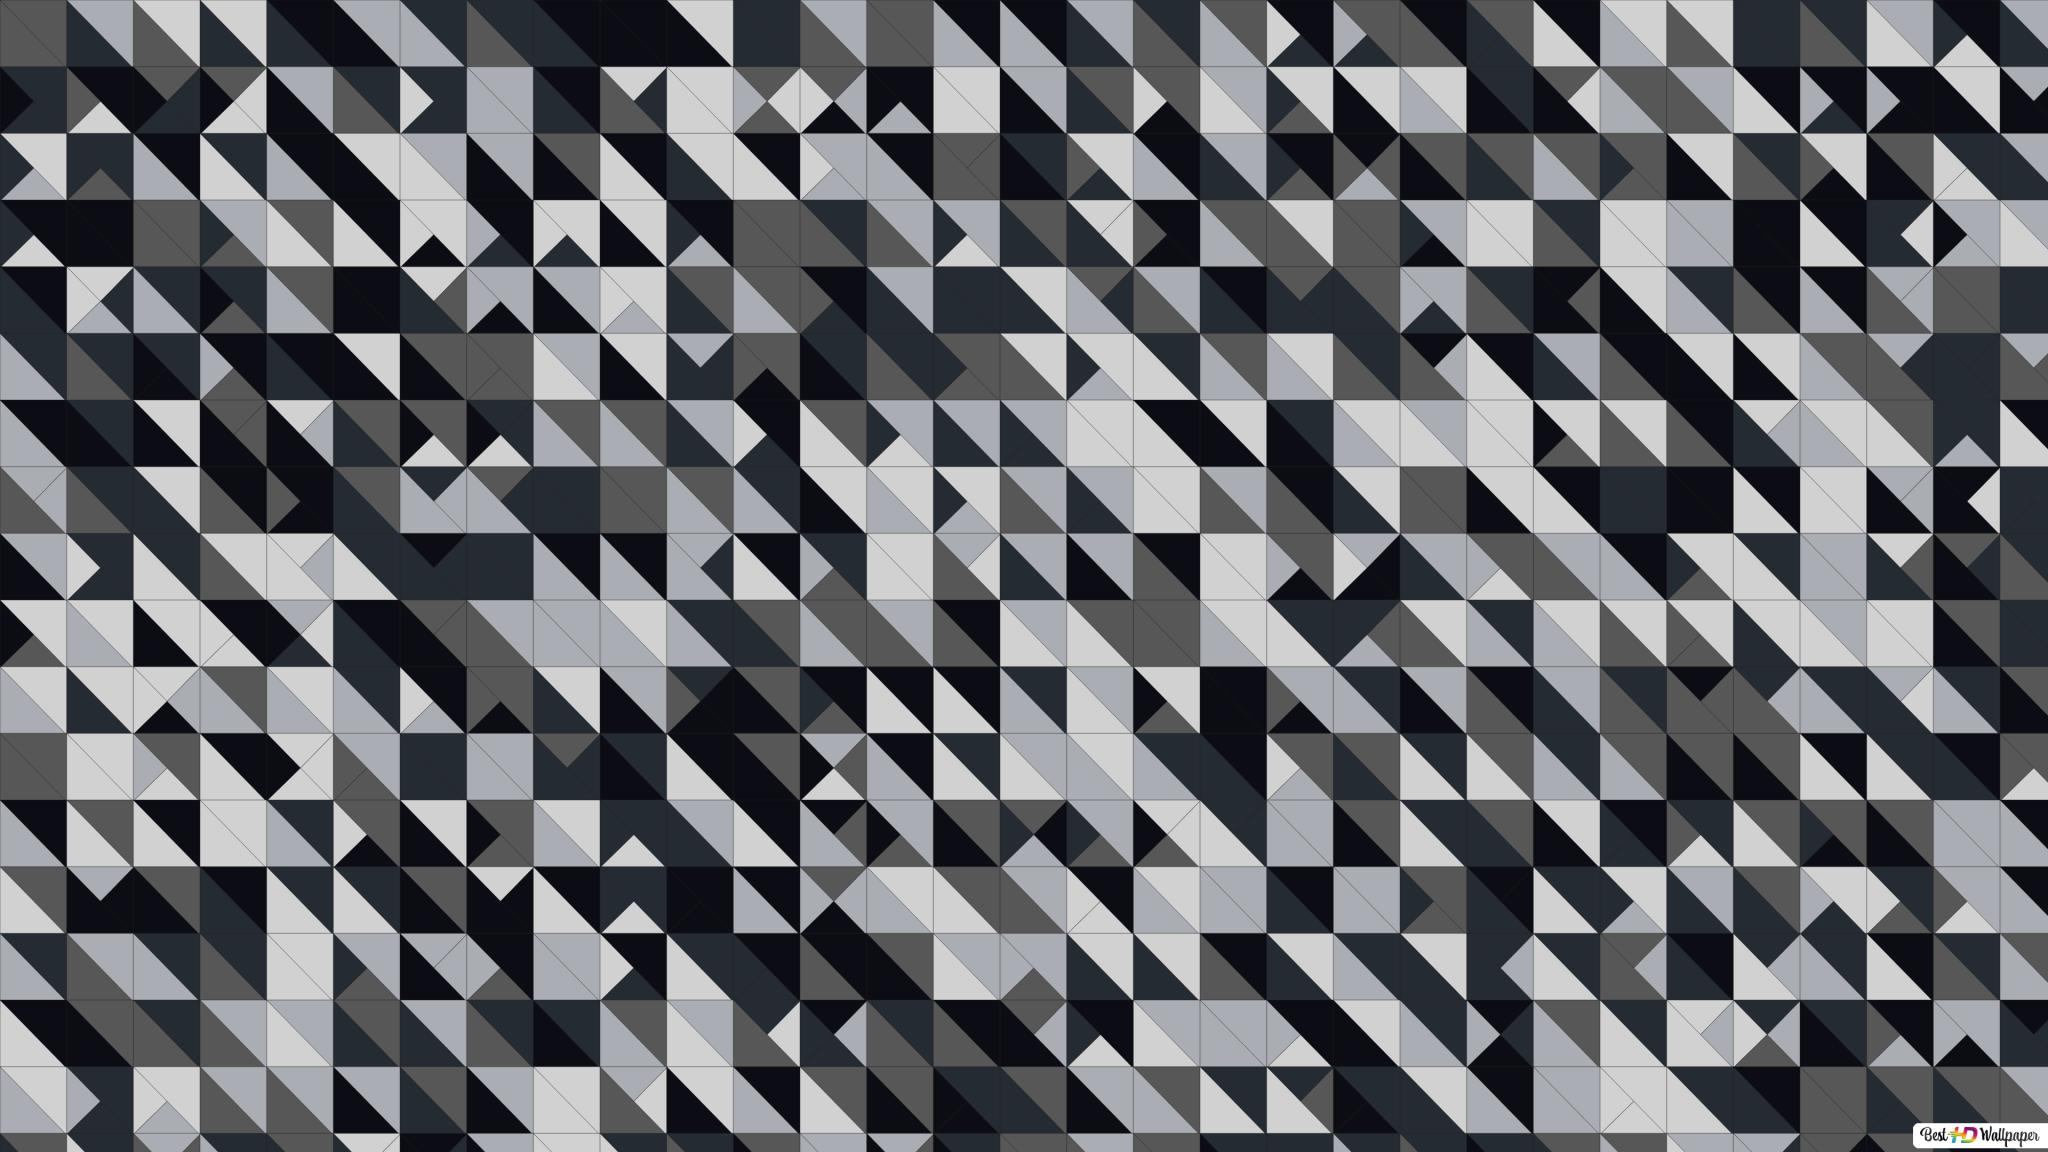 Abstract Black And White Hd Wallpaper Download